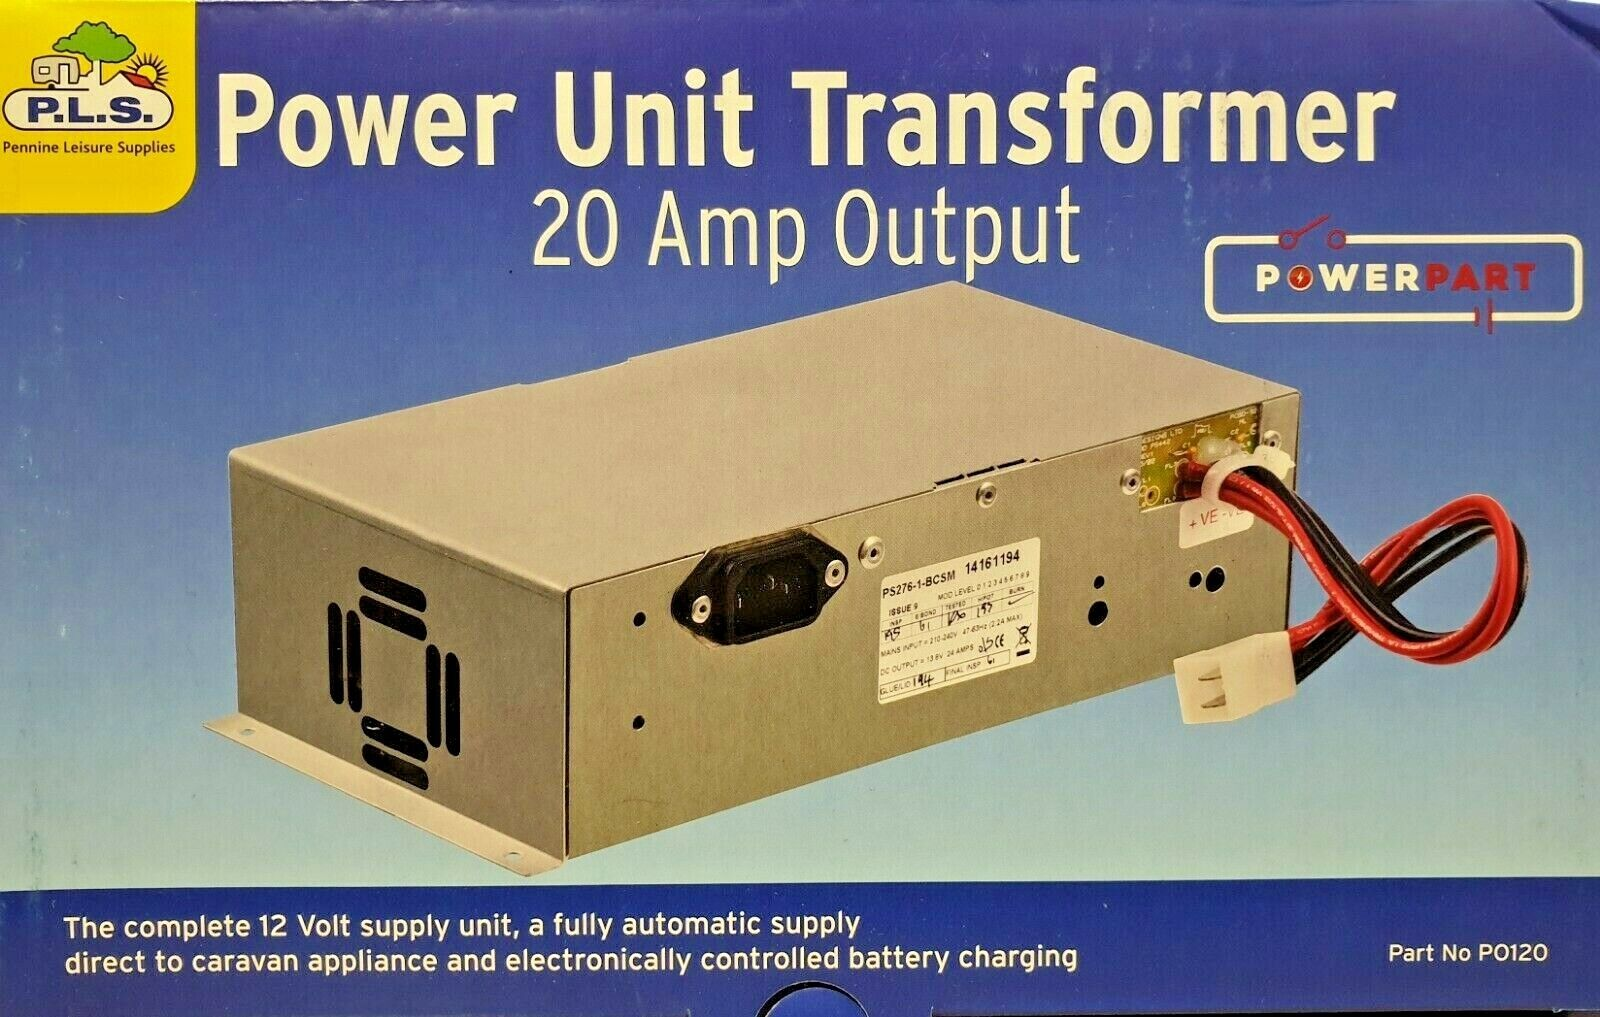 Details about Caravan Mains 20 Amp Power Supply & Battery Charger -  PS276-1-BCSM (PO120)